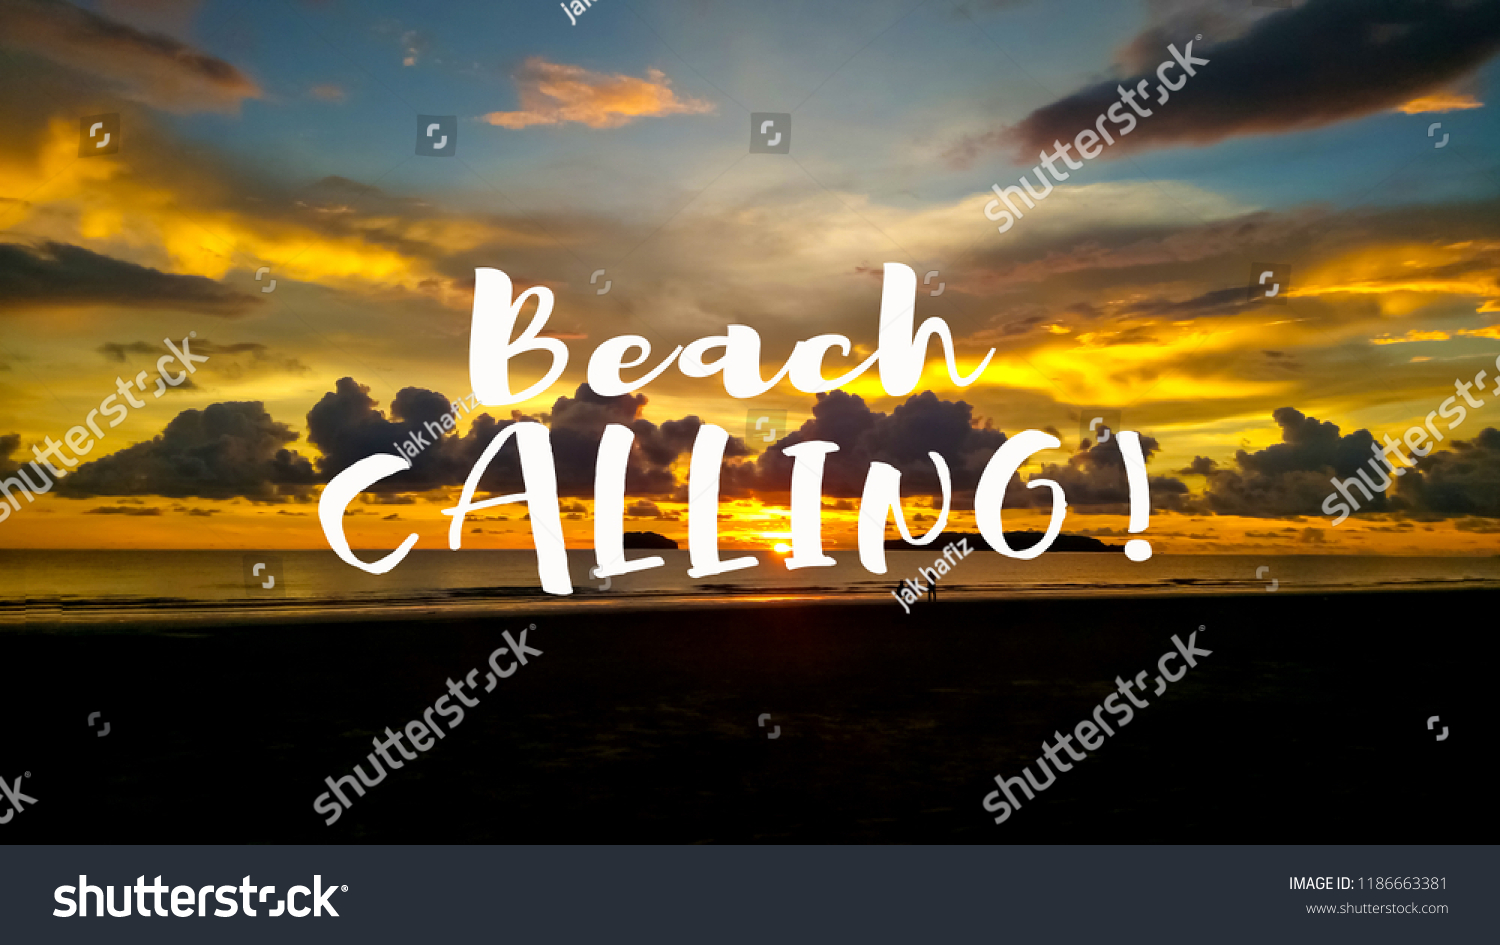 Beach Calling Quotes Against Sunset View Stock Photo Edit Now